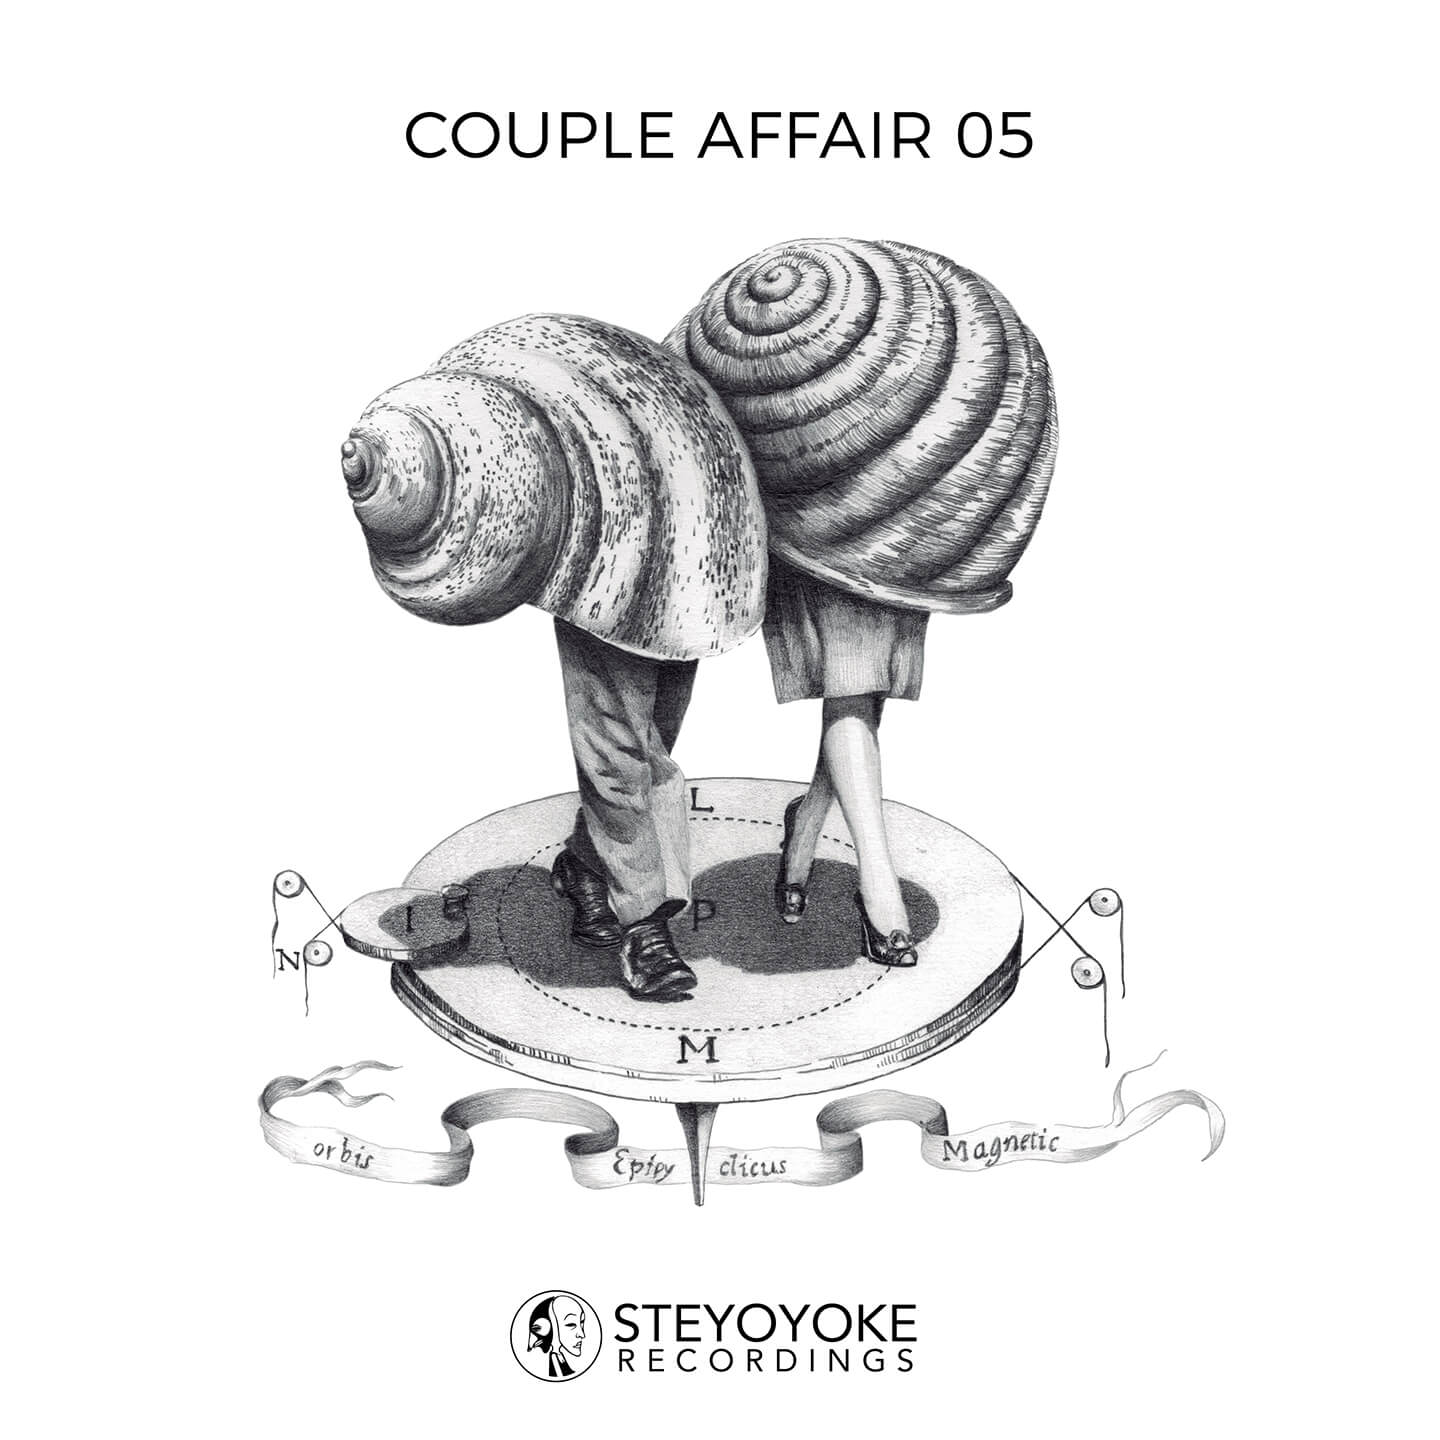 SYYK093 - Steyoyoke - Couple Affair 05 vinyl